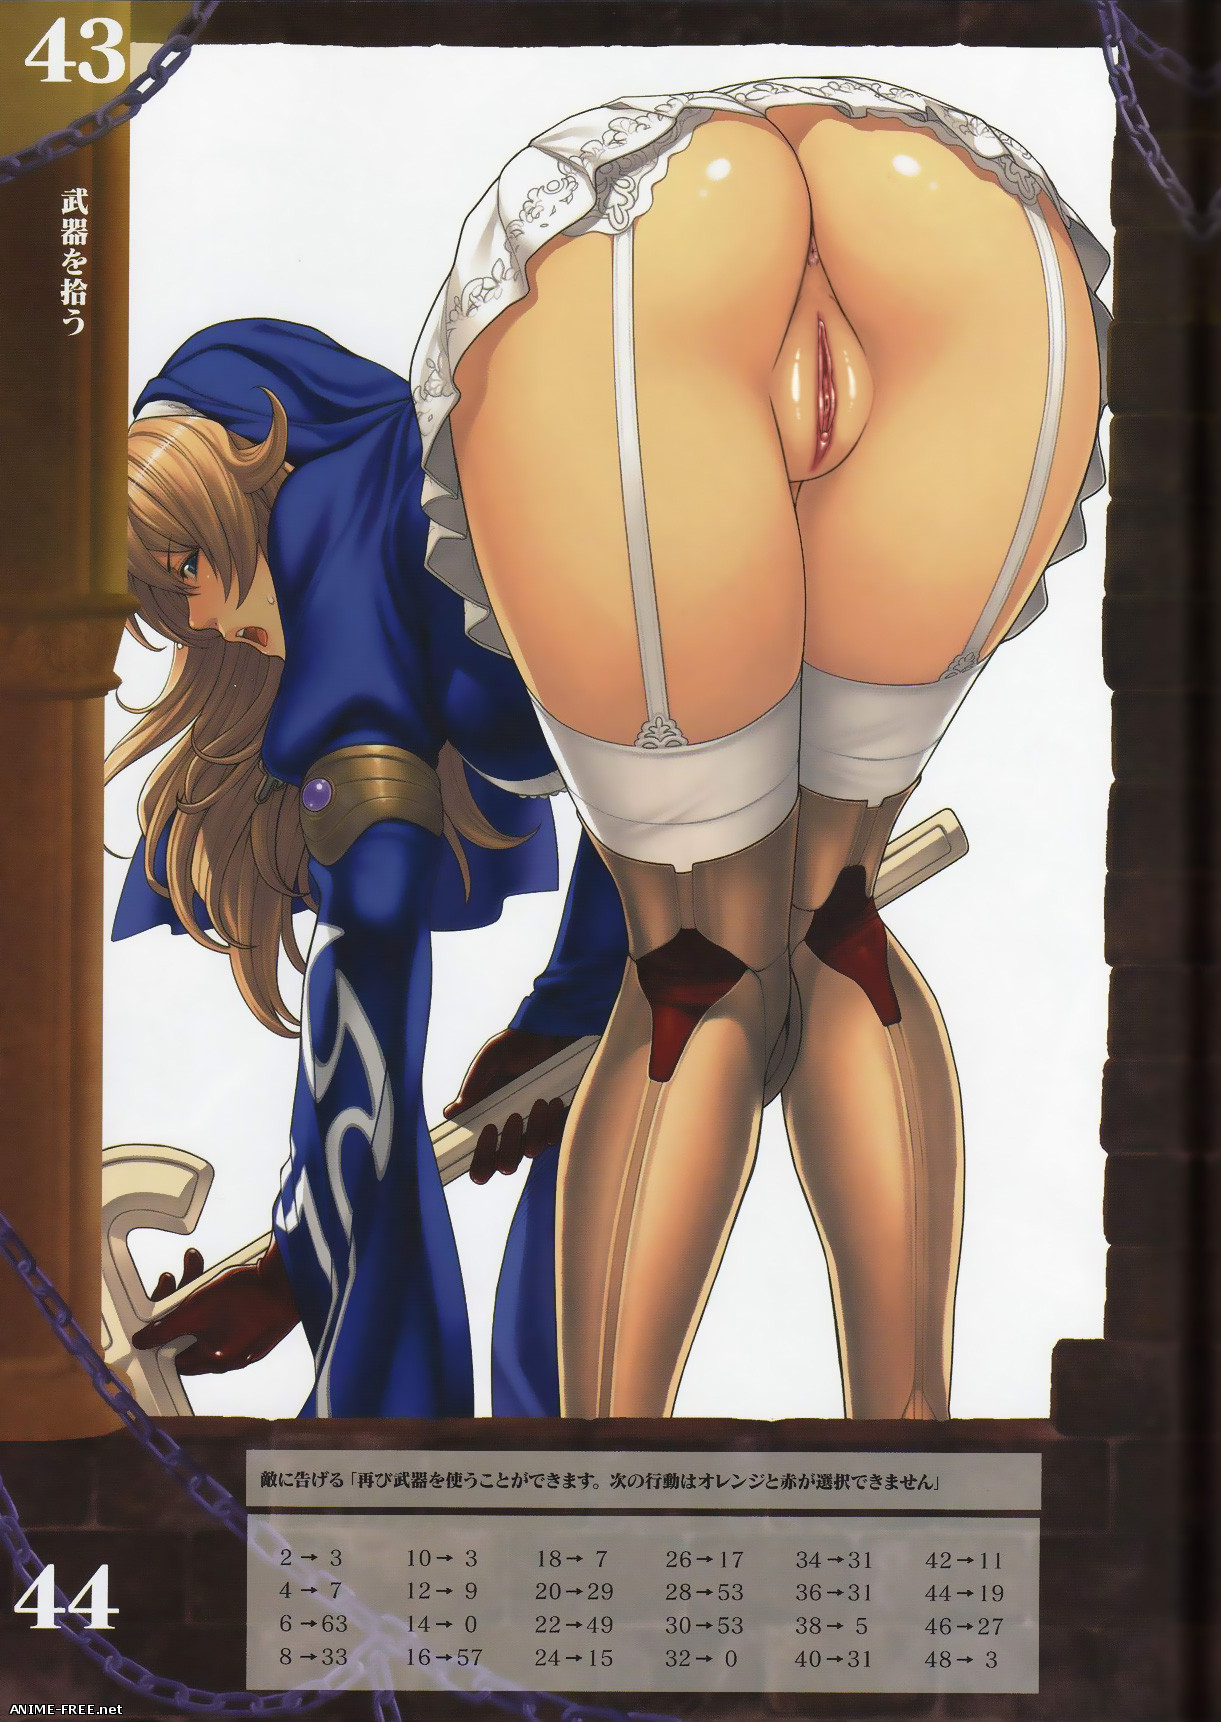 Queen's Blade ArtBook (Collection) - Сборник хентай арта [Ptcen] [JPG,PNG] Hentai ART